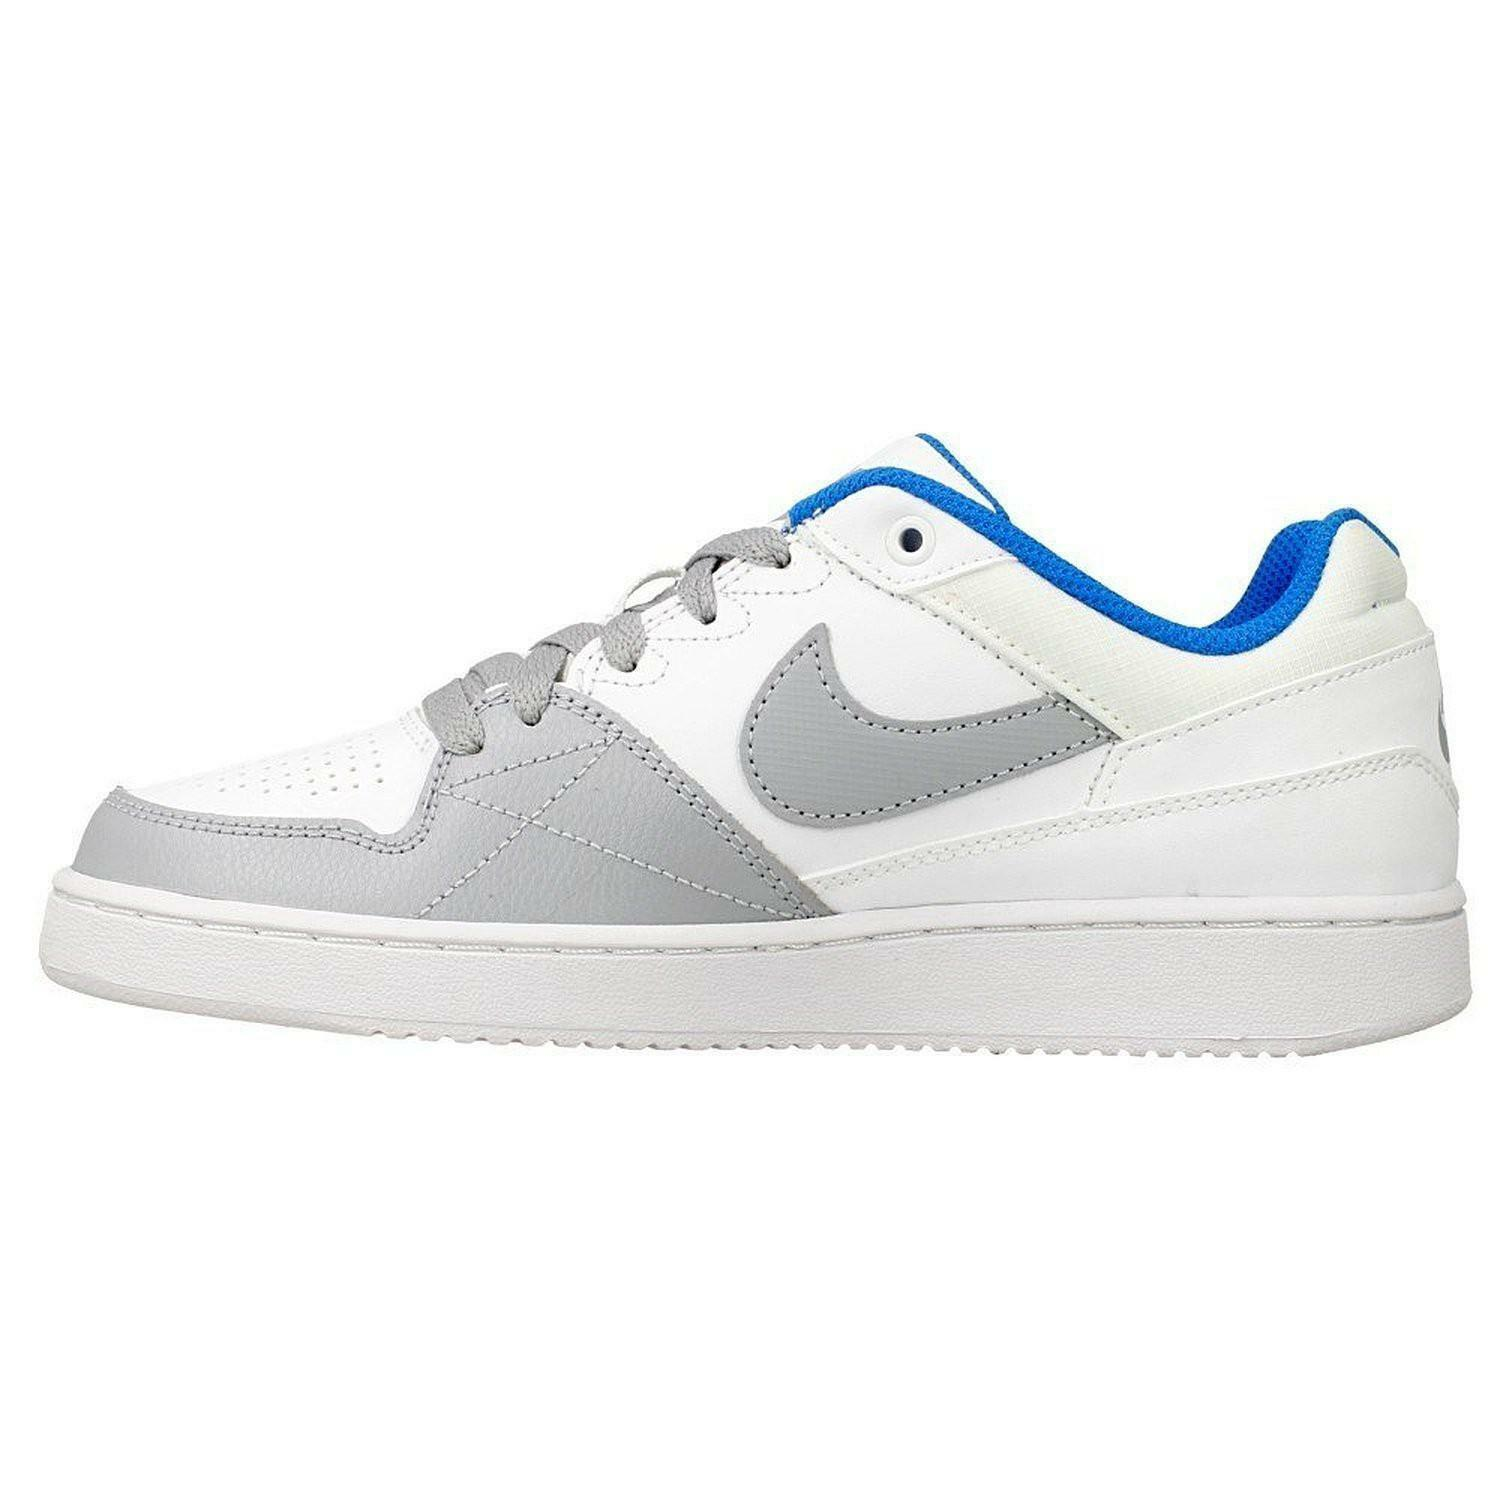 nike priority low gs scarpe sportive donna bianche 653672